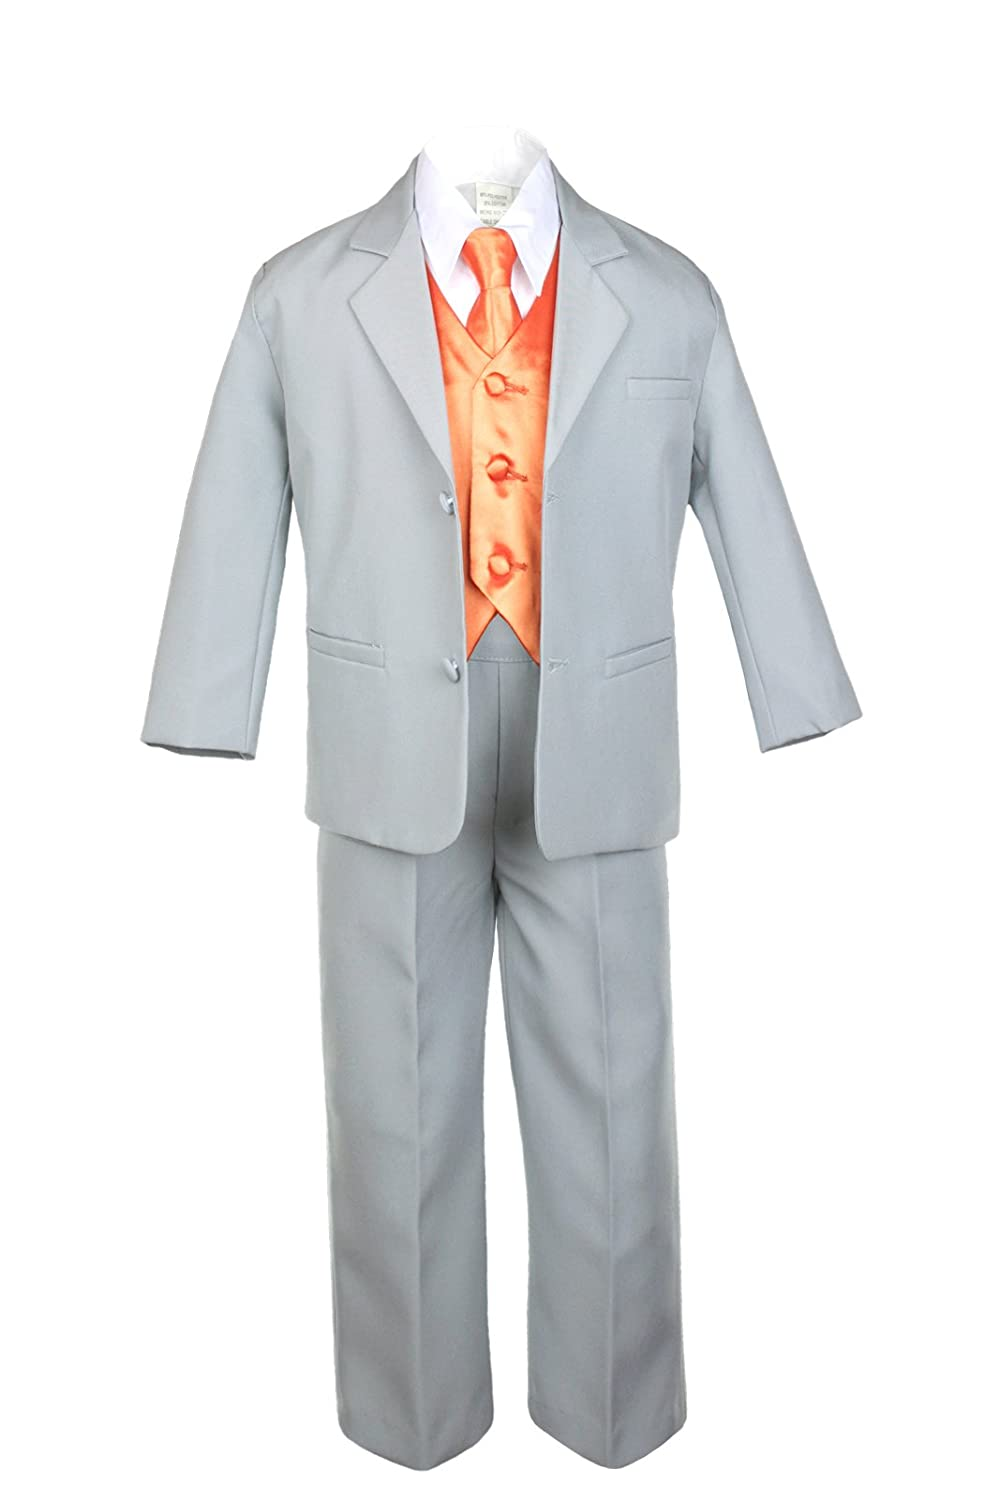 Unotux 7pc Boys Silver Suit with Satin Orange Vest Set from Baby to Teen